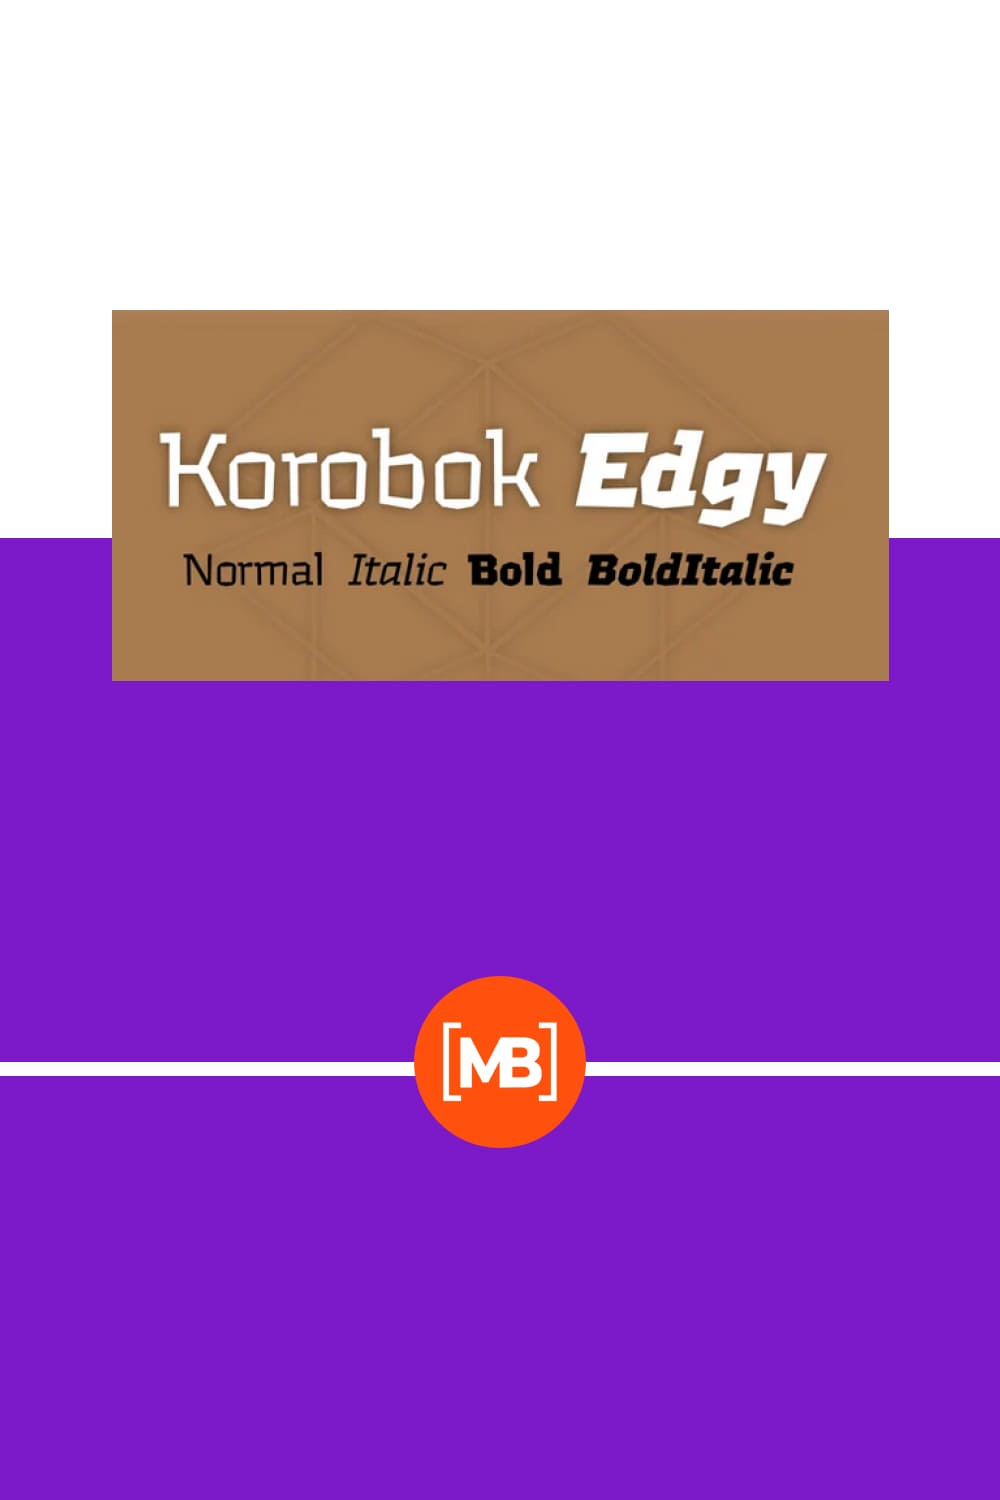 Korobok is irregular font with asymmectric serifs and slightly geometric appearance.